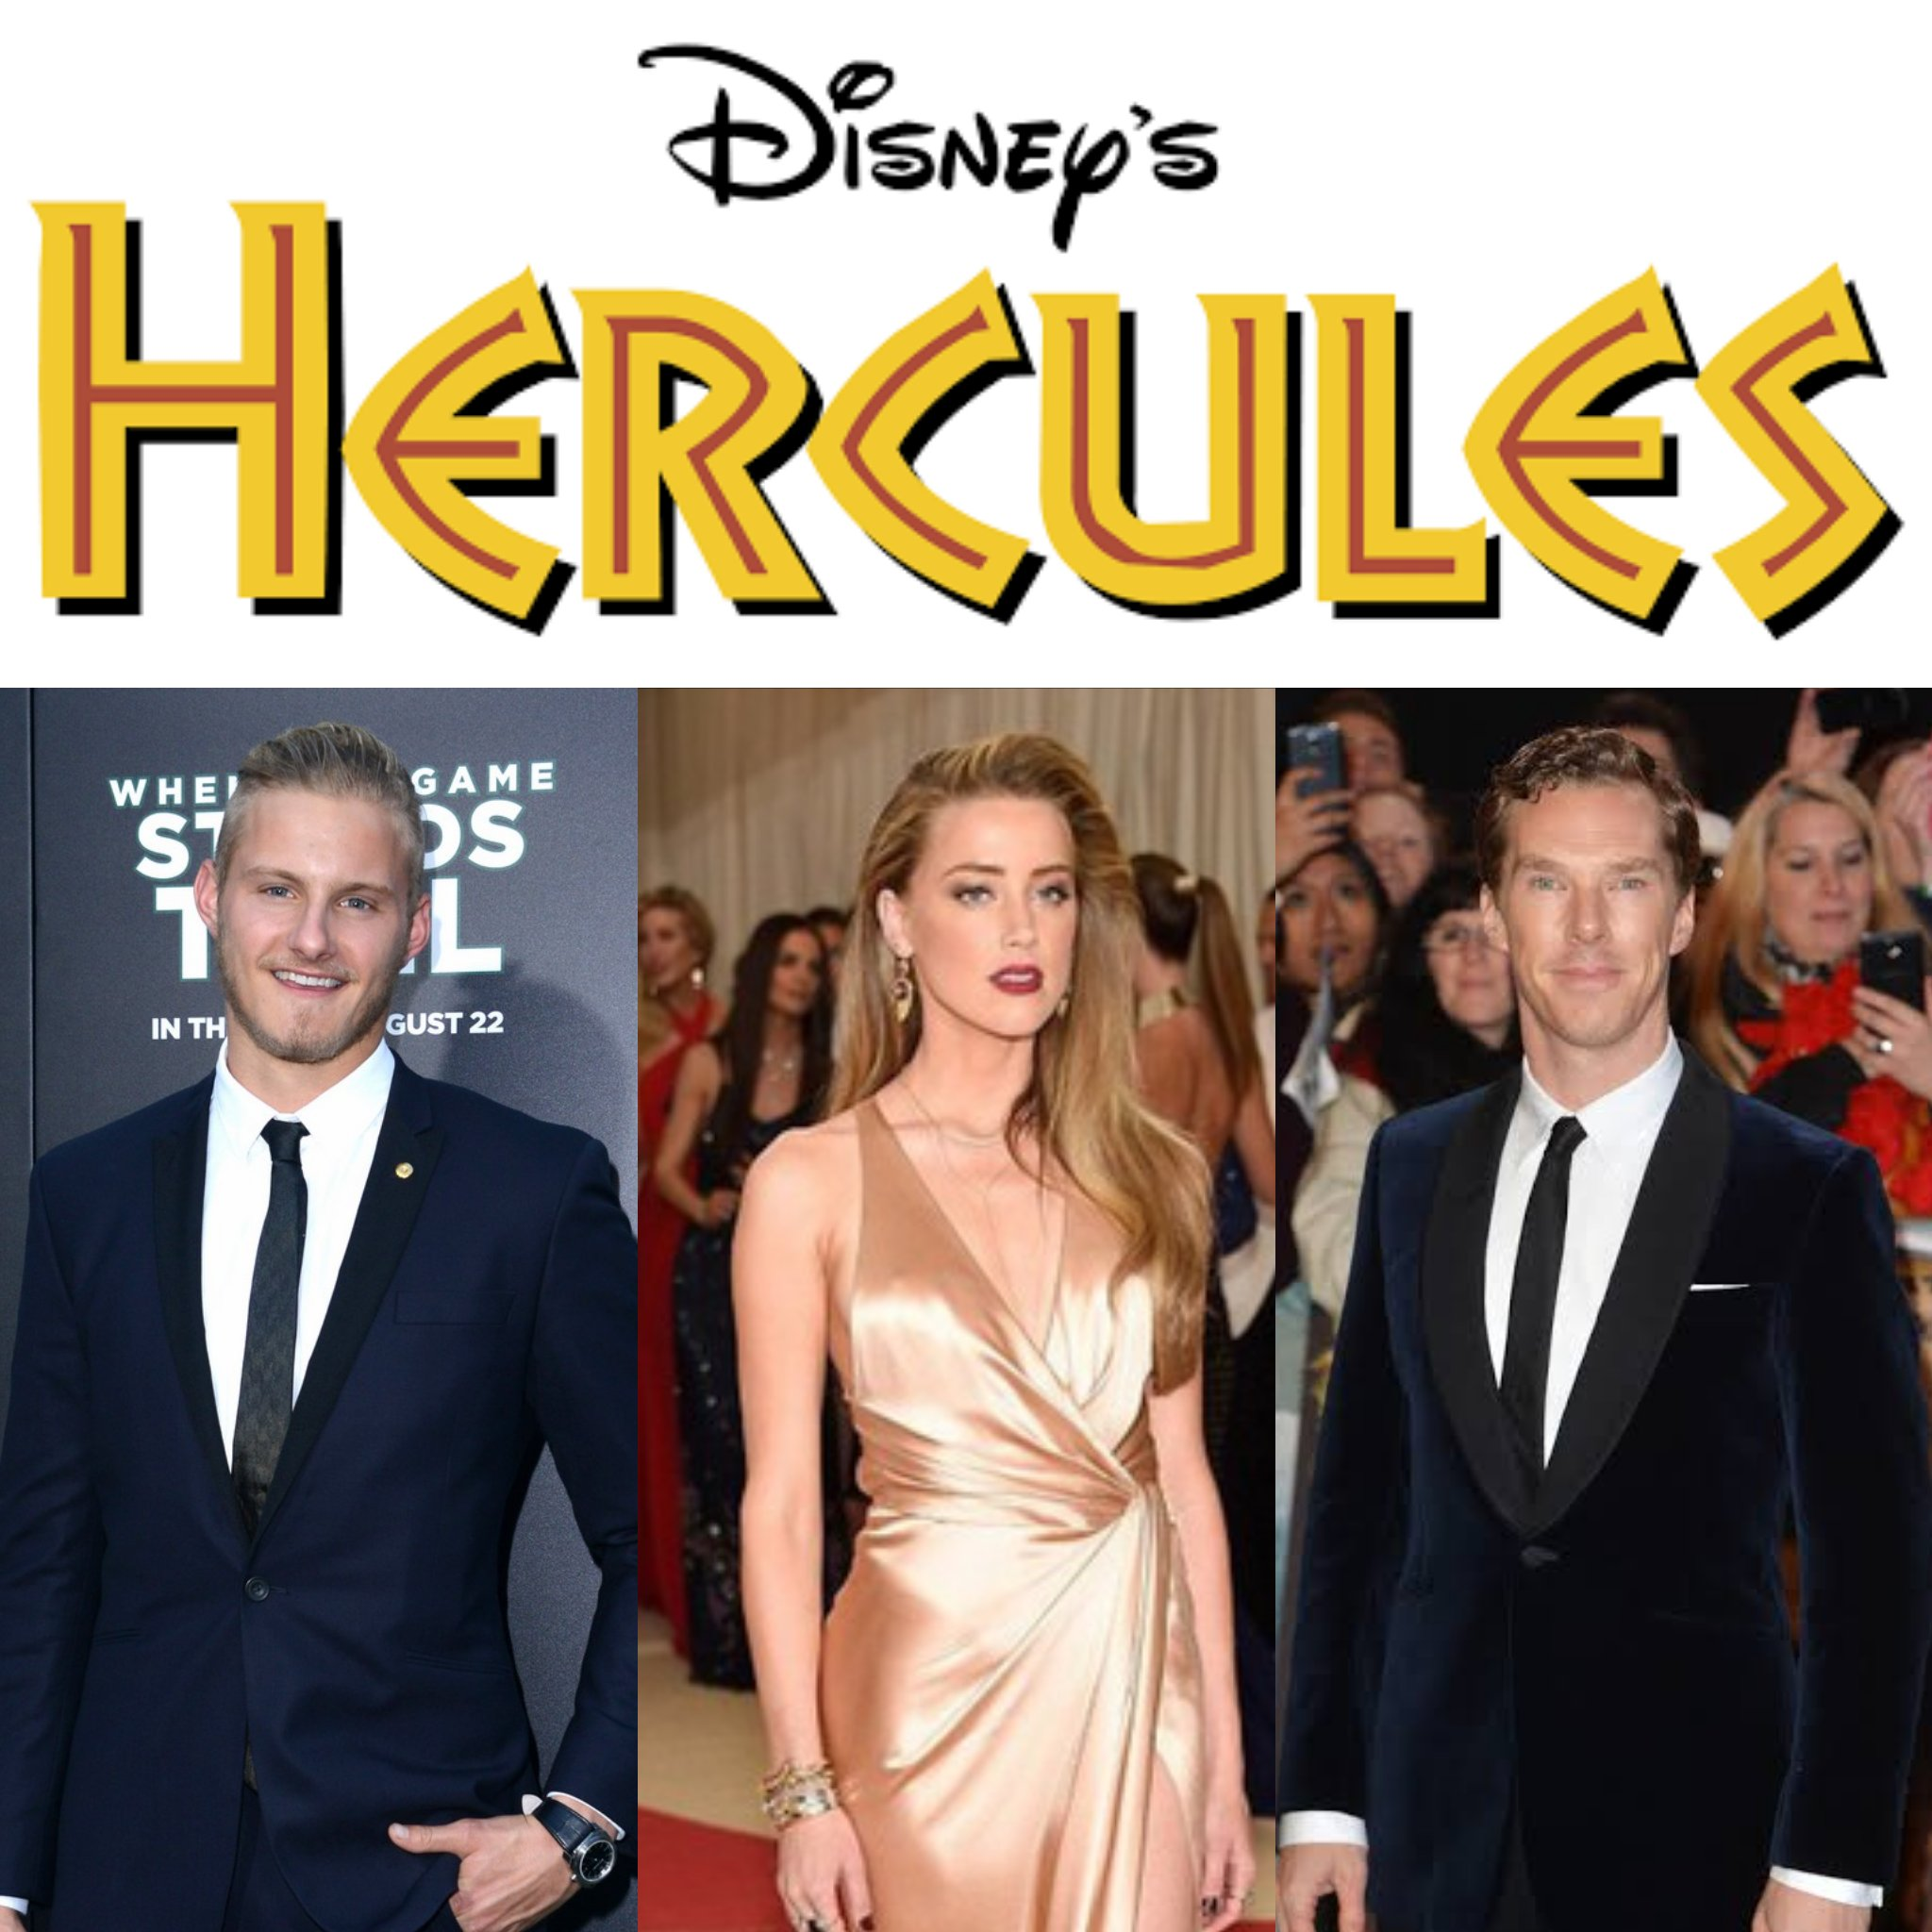 Red Neighbor On Twitter Disney Plans To Announce Hercules